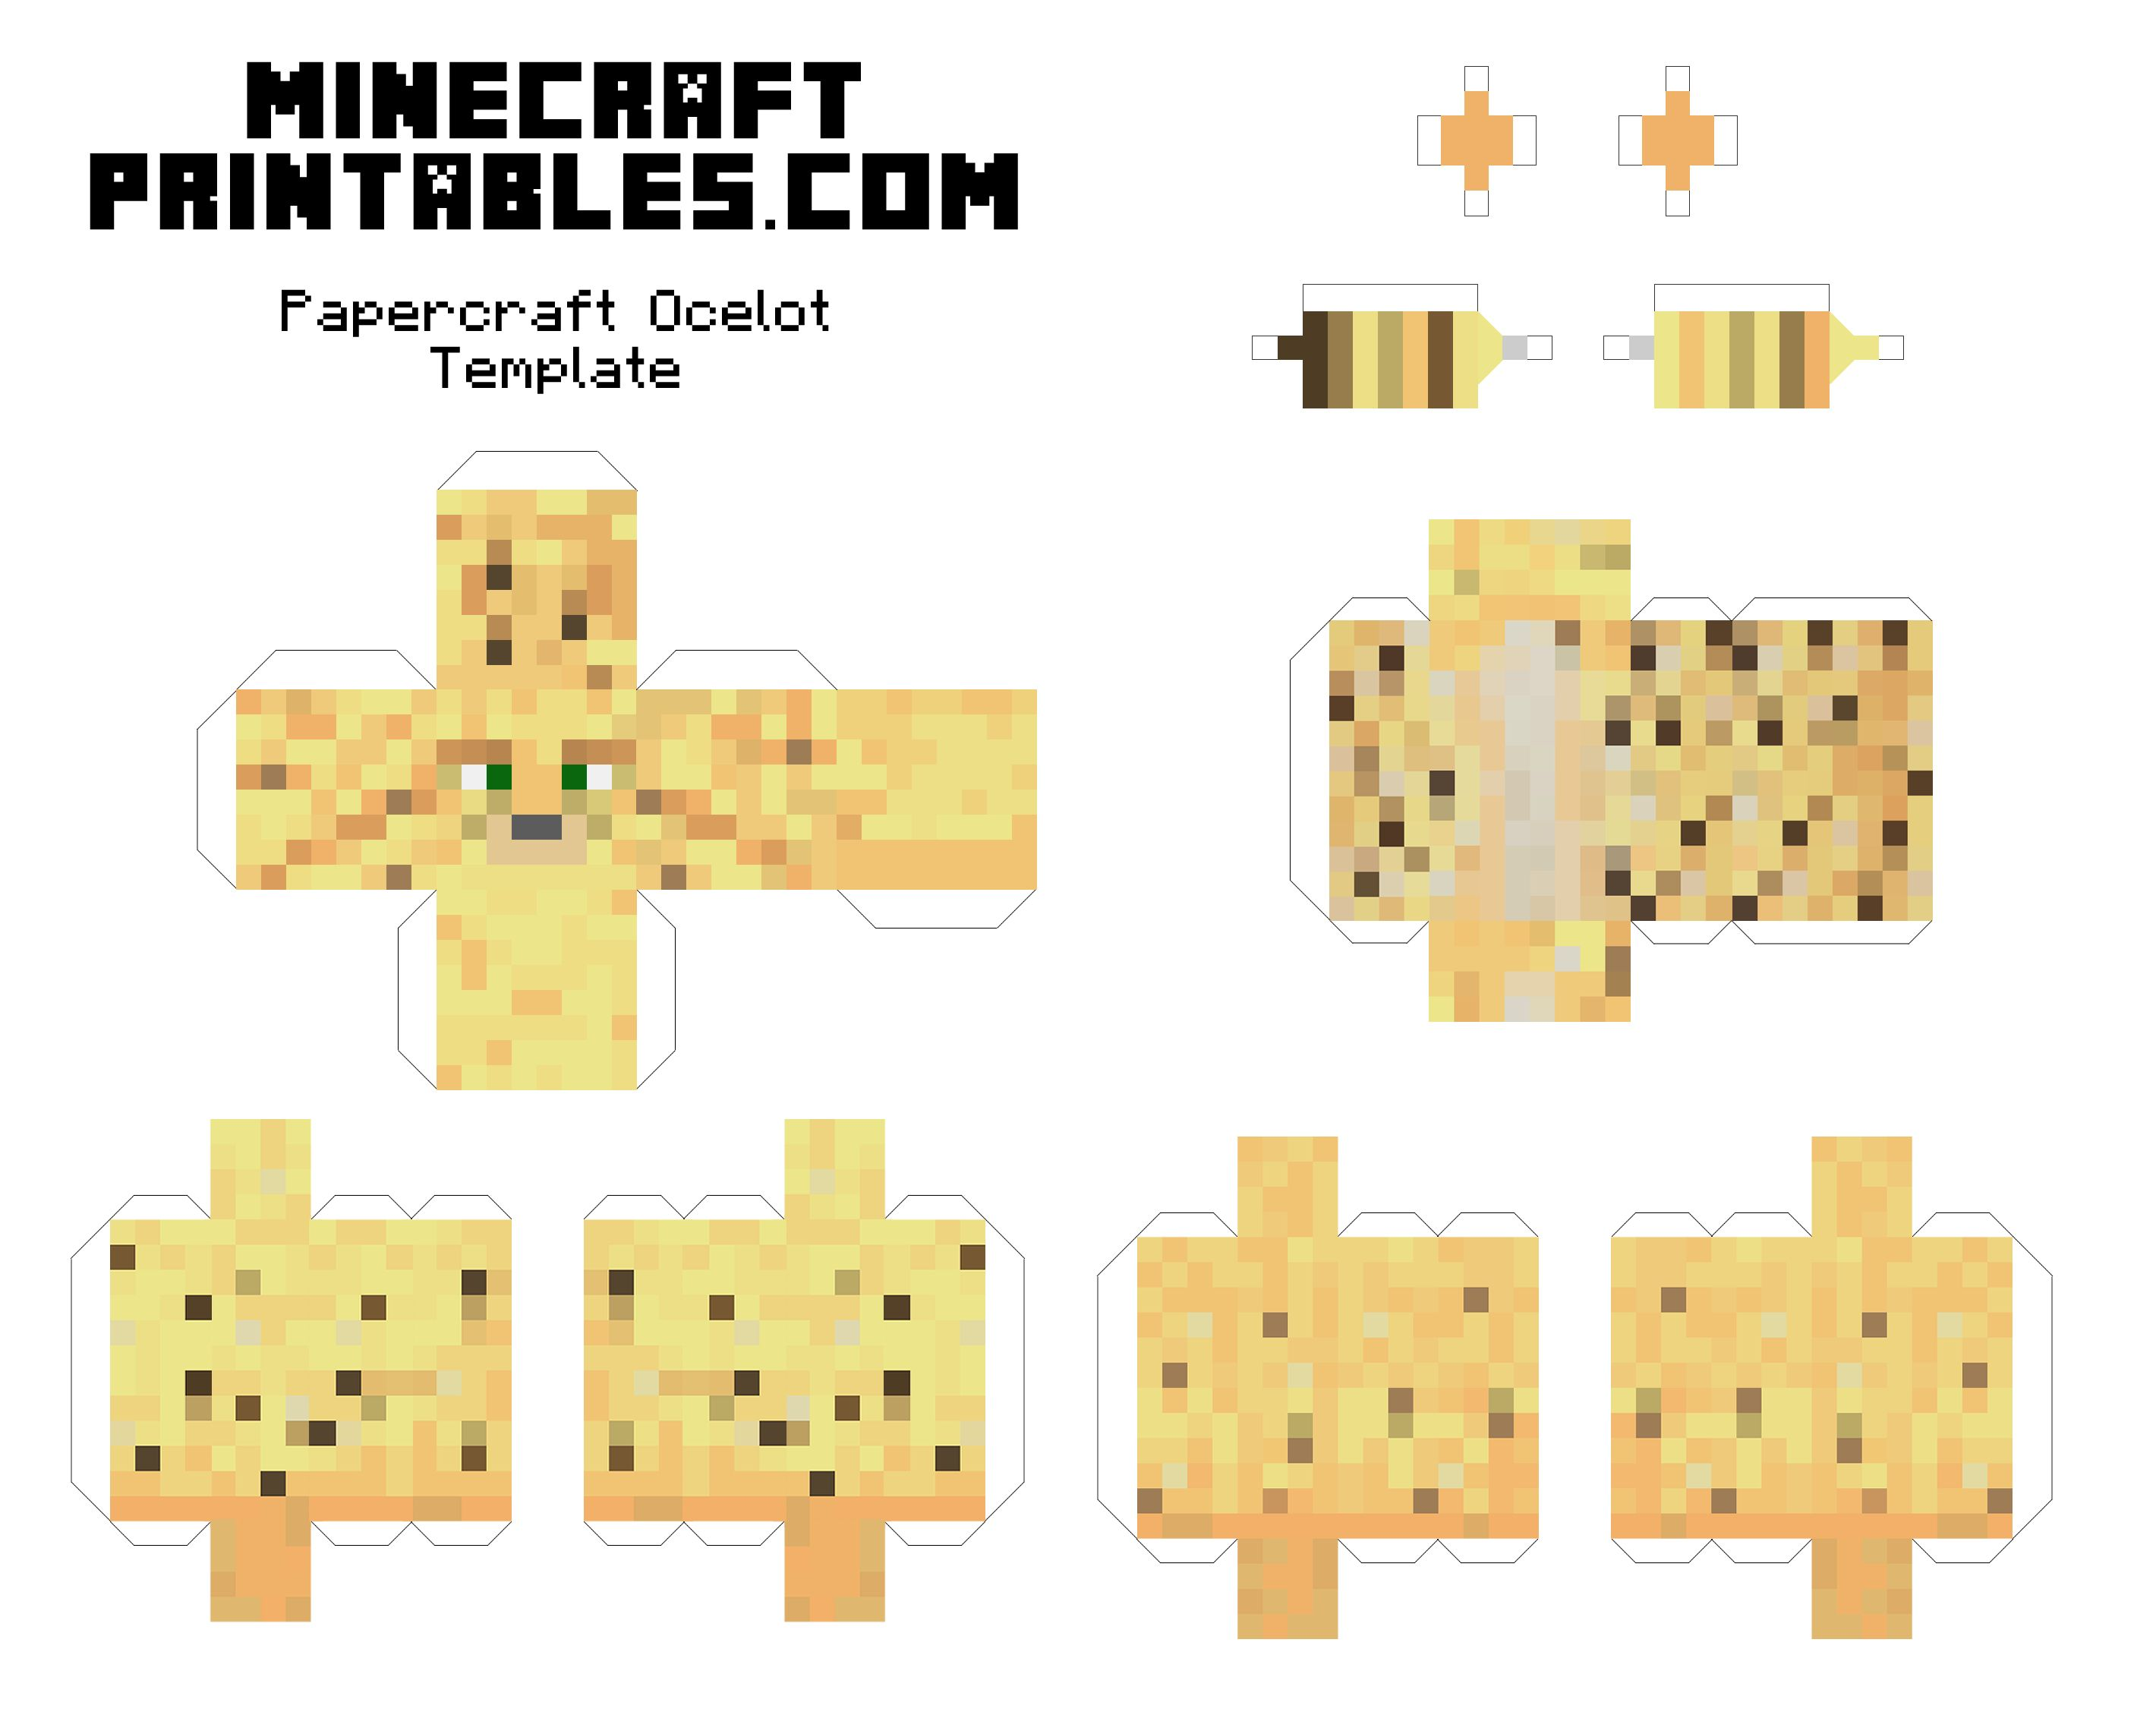 Free Printable Minecraft Ocelot Papercraft Template Print Cut